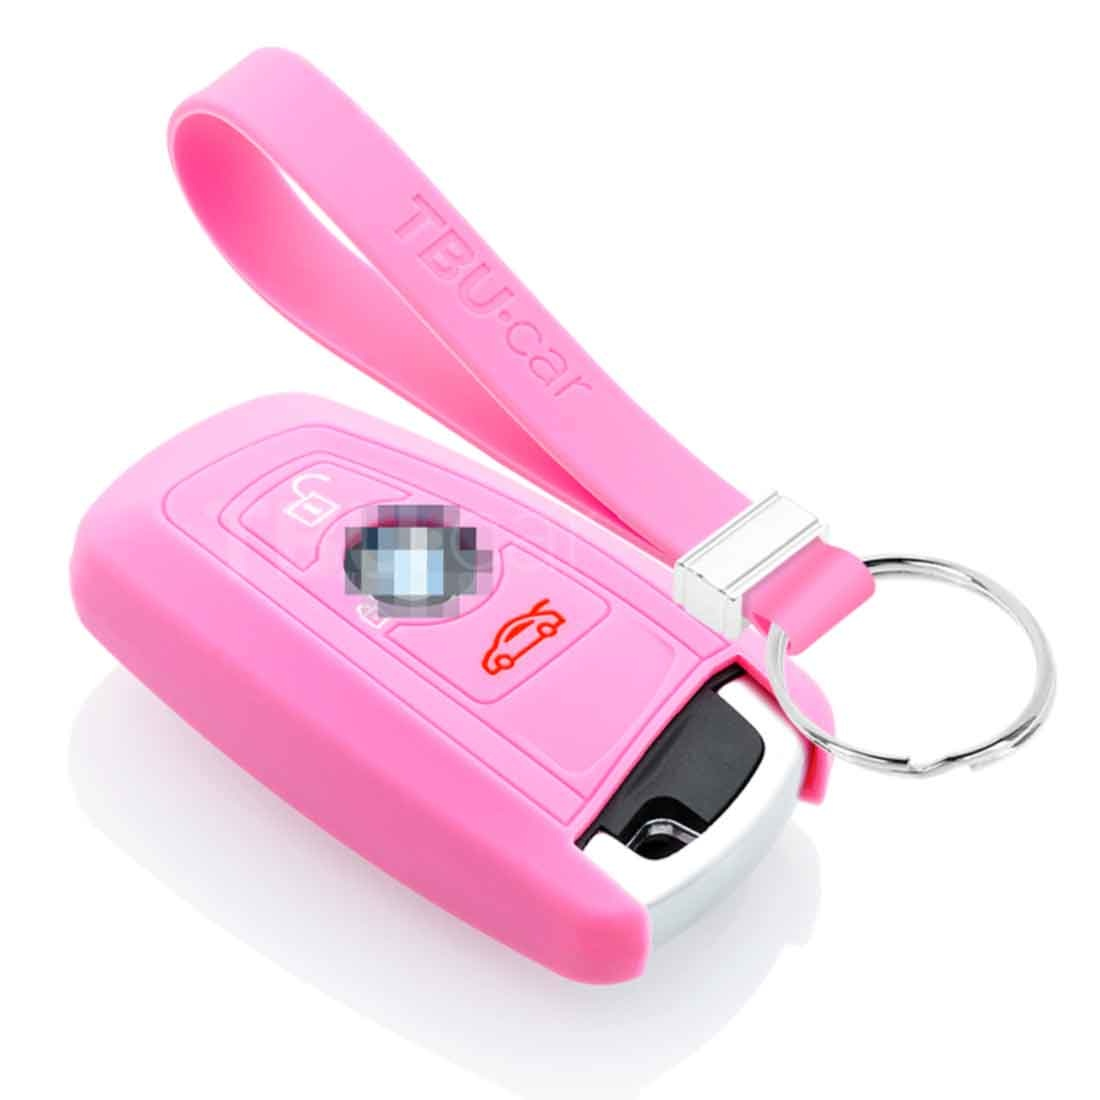 TBU car TBU car Car key cover compatible with BMW - Silicone Protective Remote Key Shell - FOB Case Cover - Pink